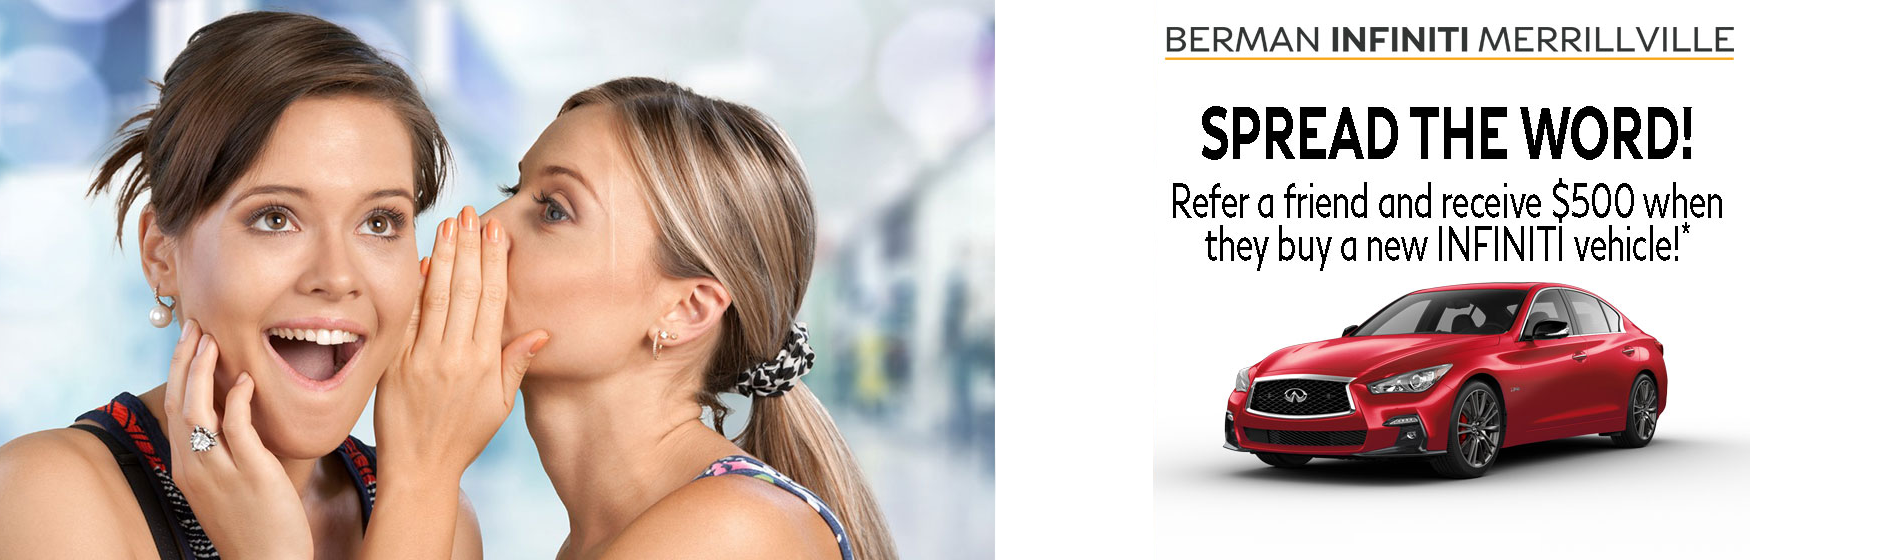 Refer a friend and received $500!